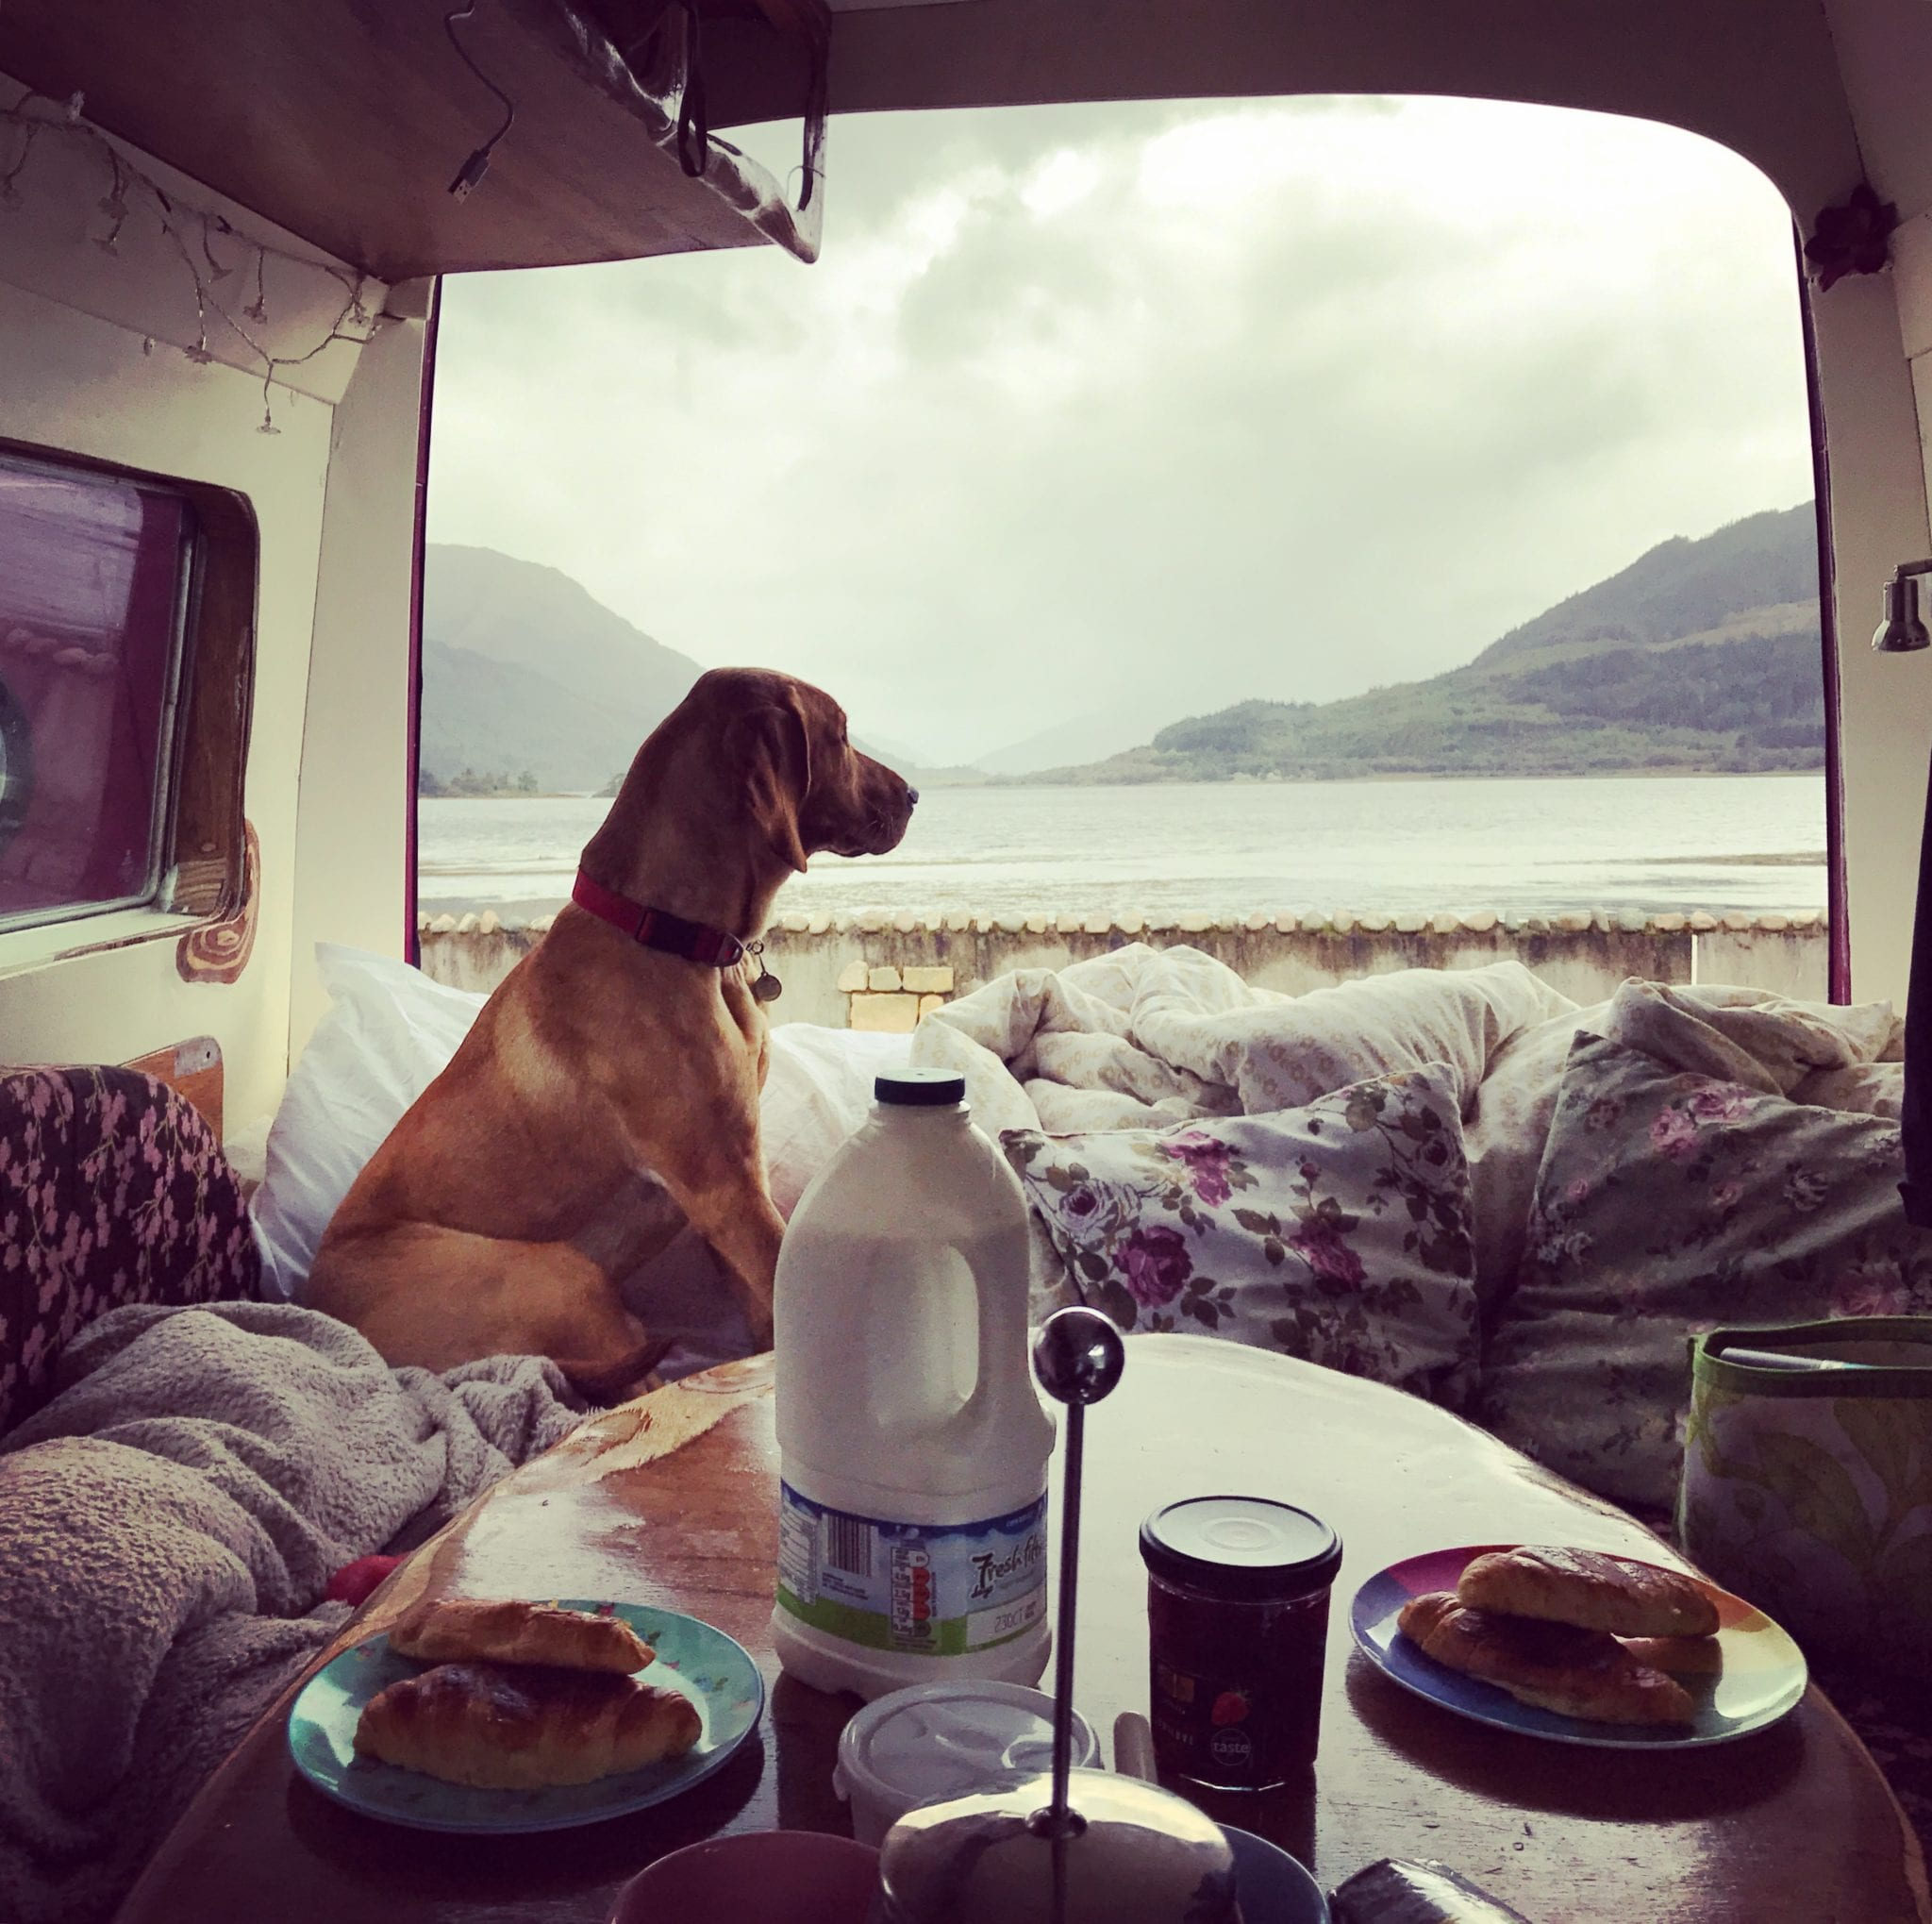 A dog sat on a bed campervan bed looking out onto a lake with breakfast on the table